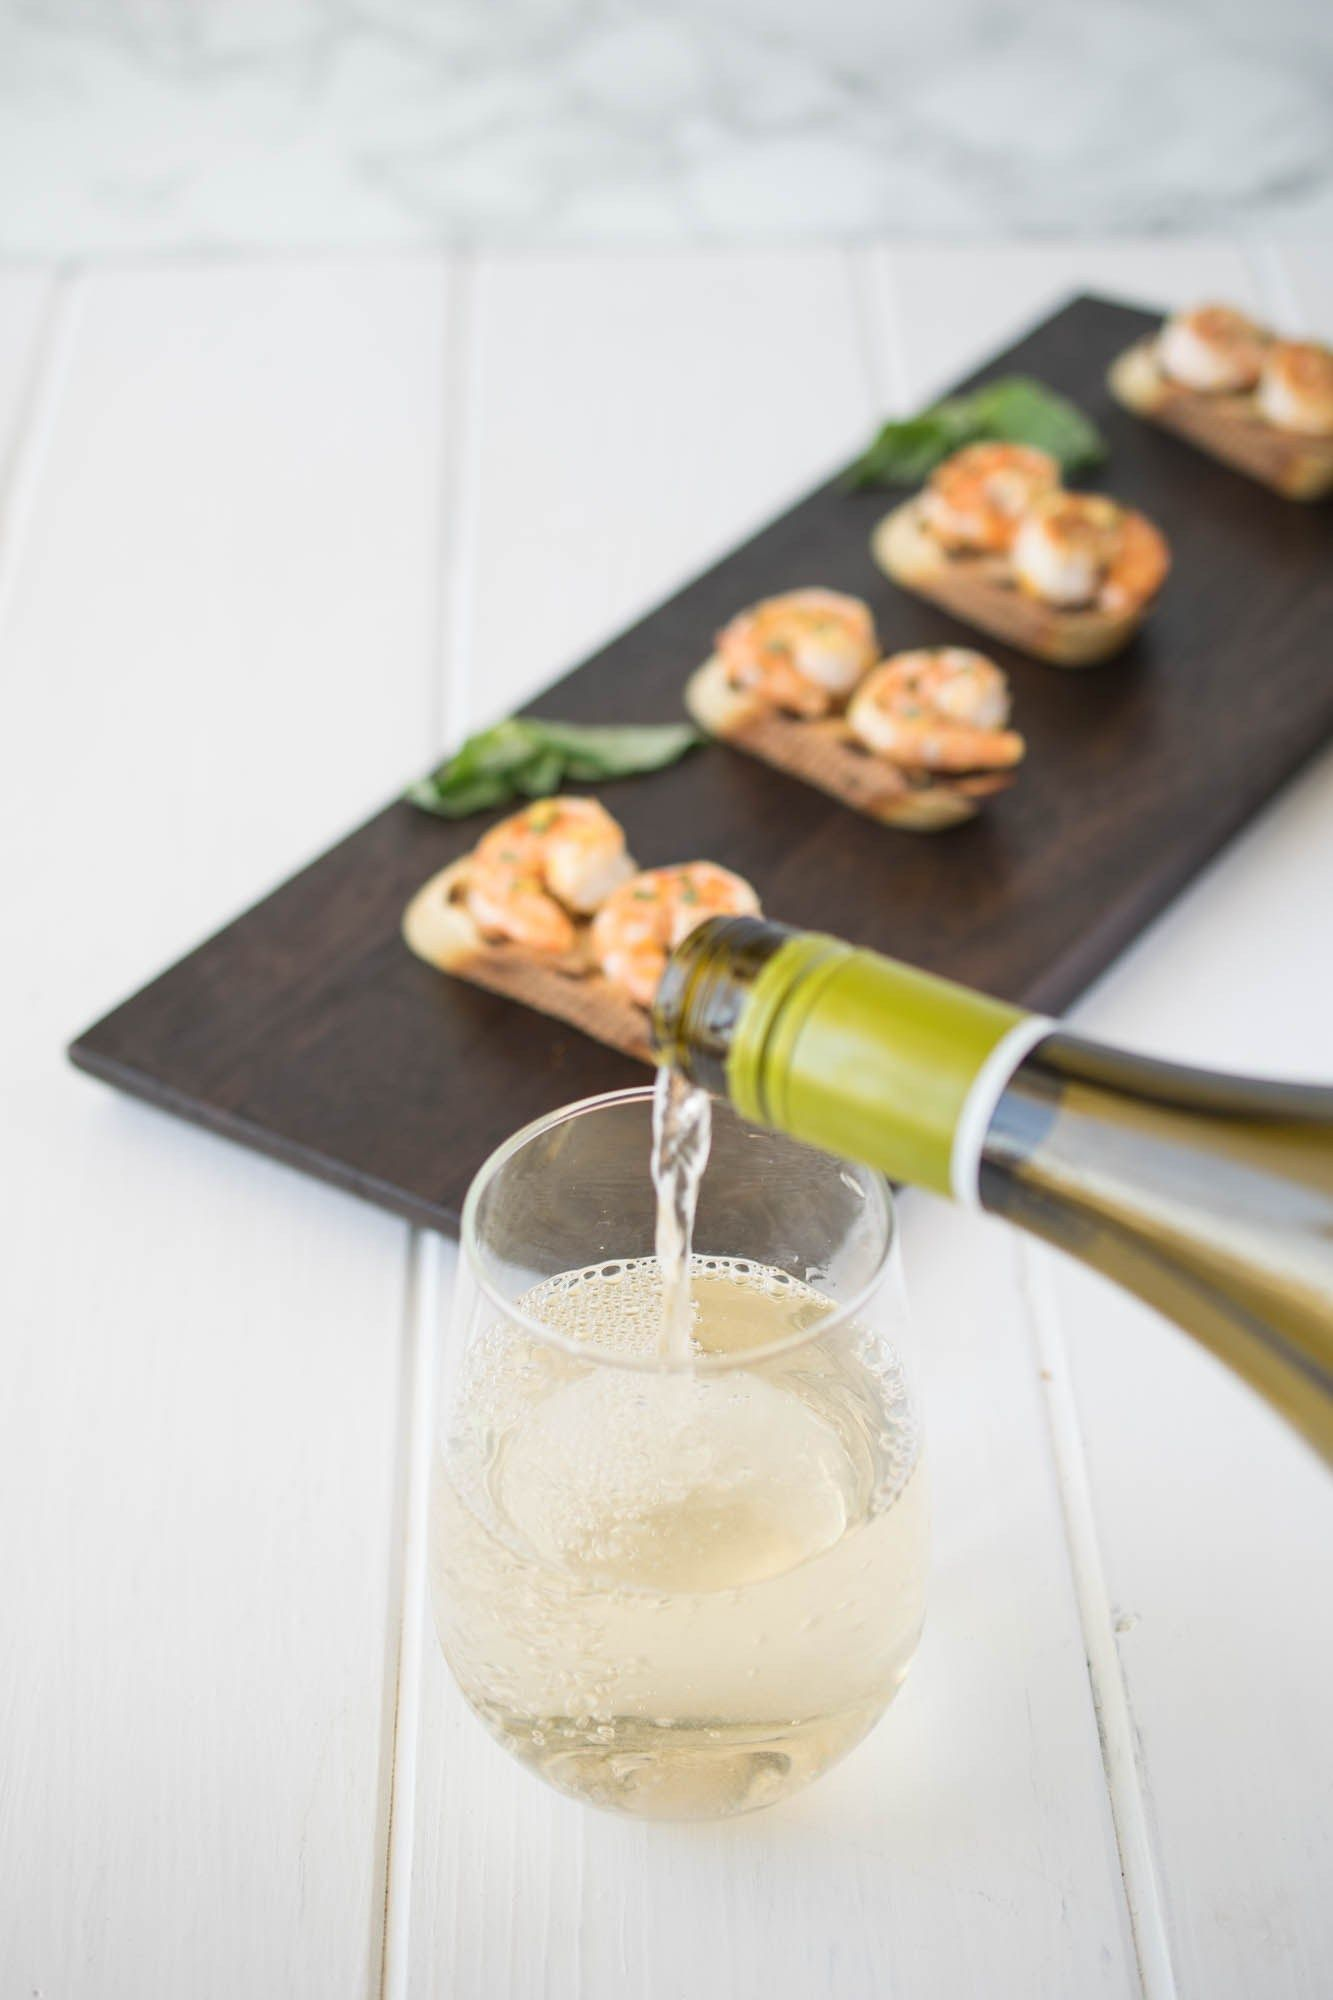 Shrimp bruschetta is the perfect summer-time appetizer. An easy, yet elegant dish that can be served while entertaining and pairs perfectly with a delicious fruity, crisp white wine.